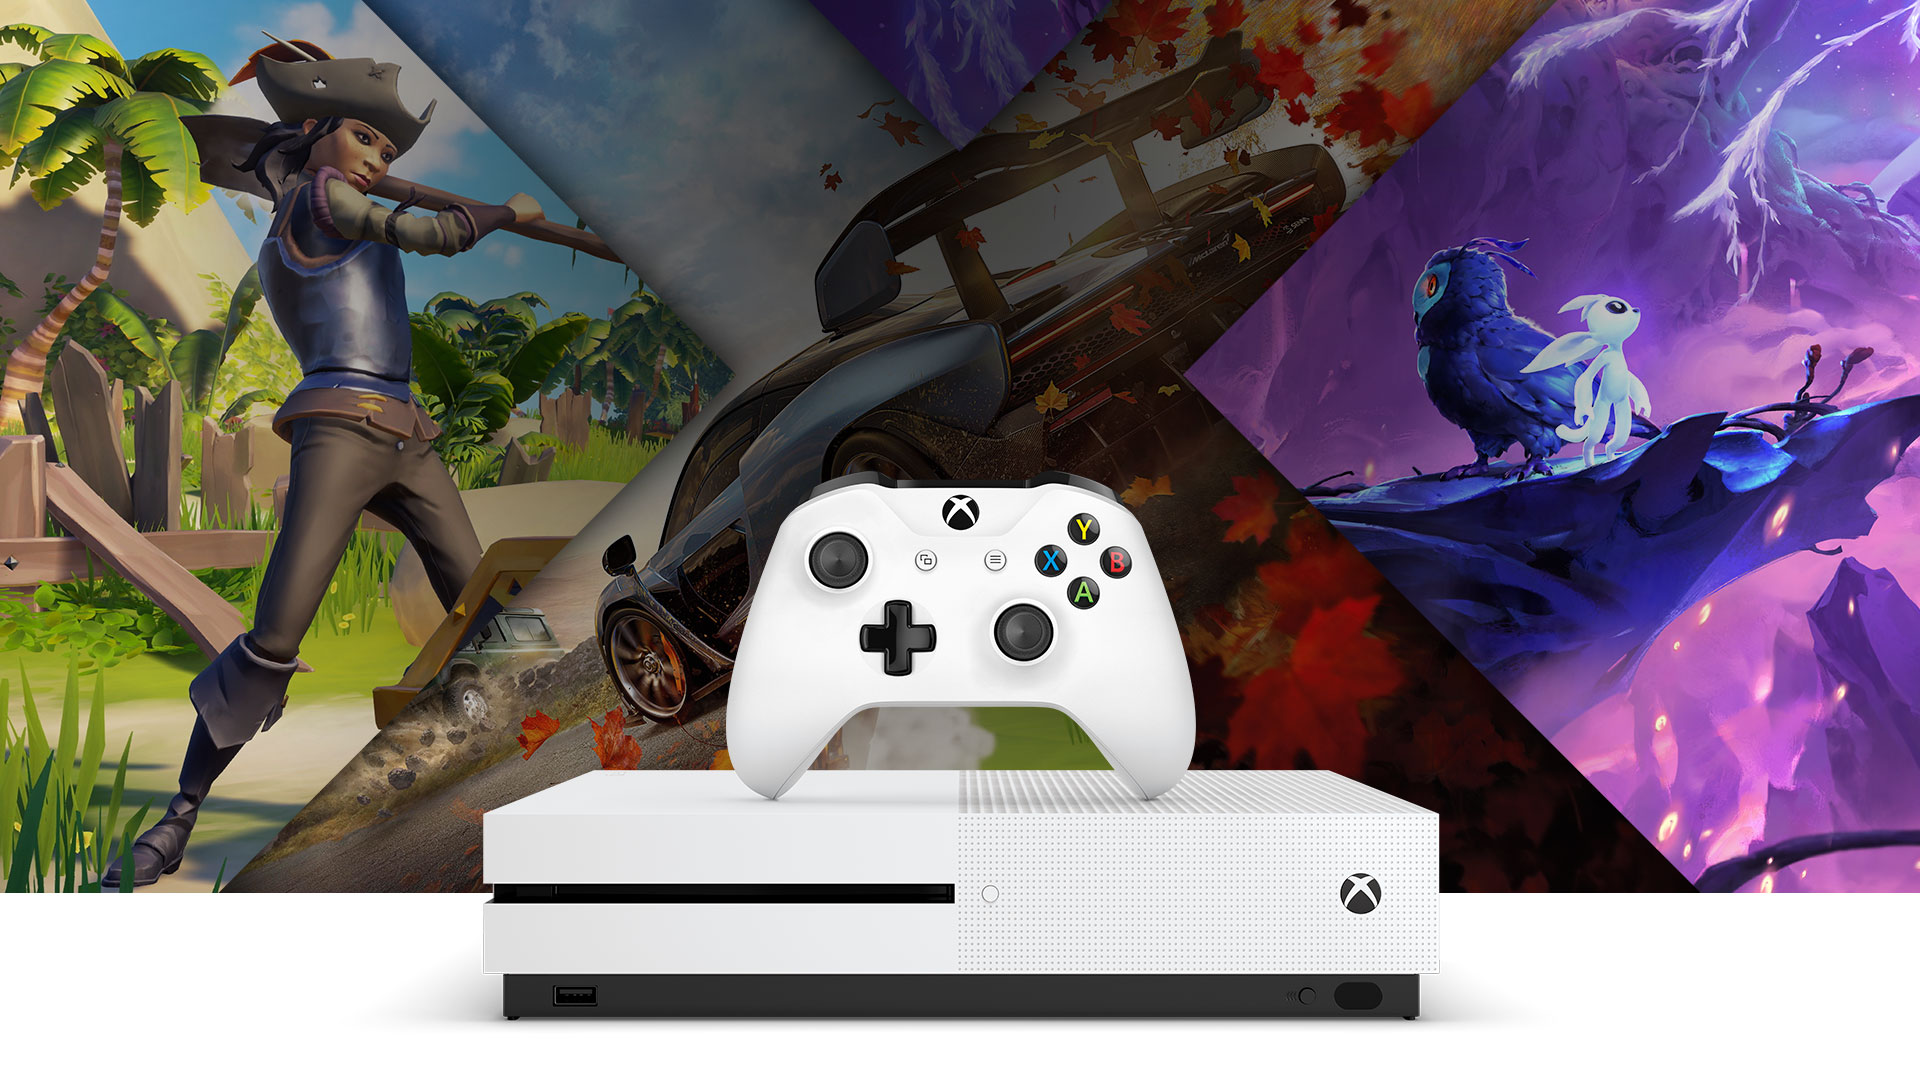 Vista frontal de uma Xbox One S e de um Comando sem Fios Branco rodeados por arte do Sea of Thieves, Forza Horizon 4 e Ori and the Will of Wisps